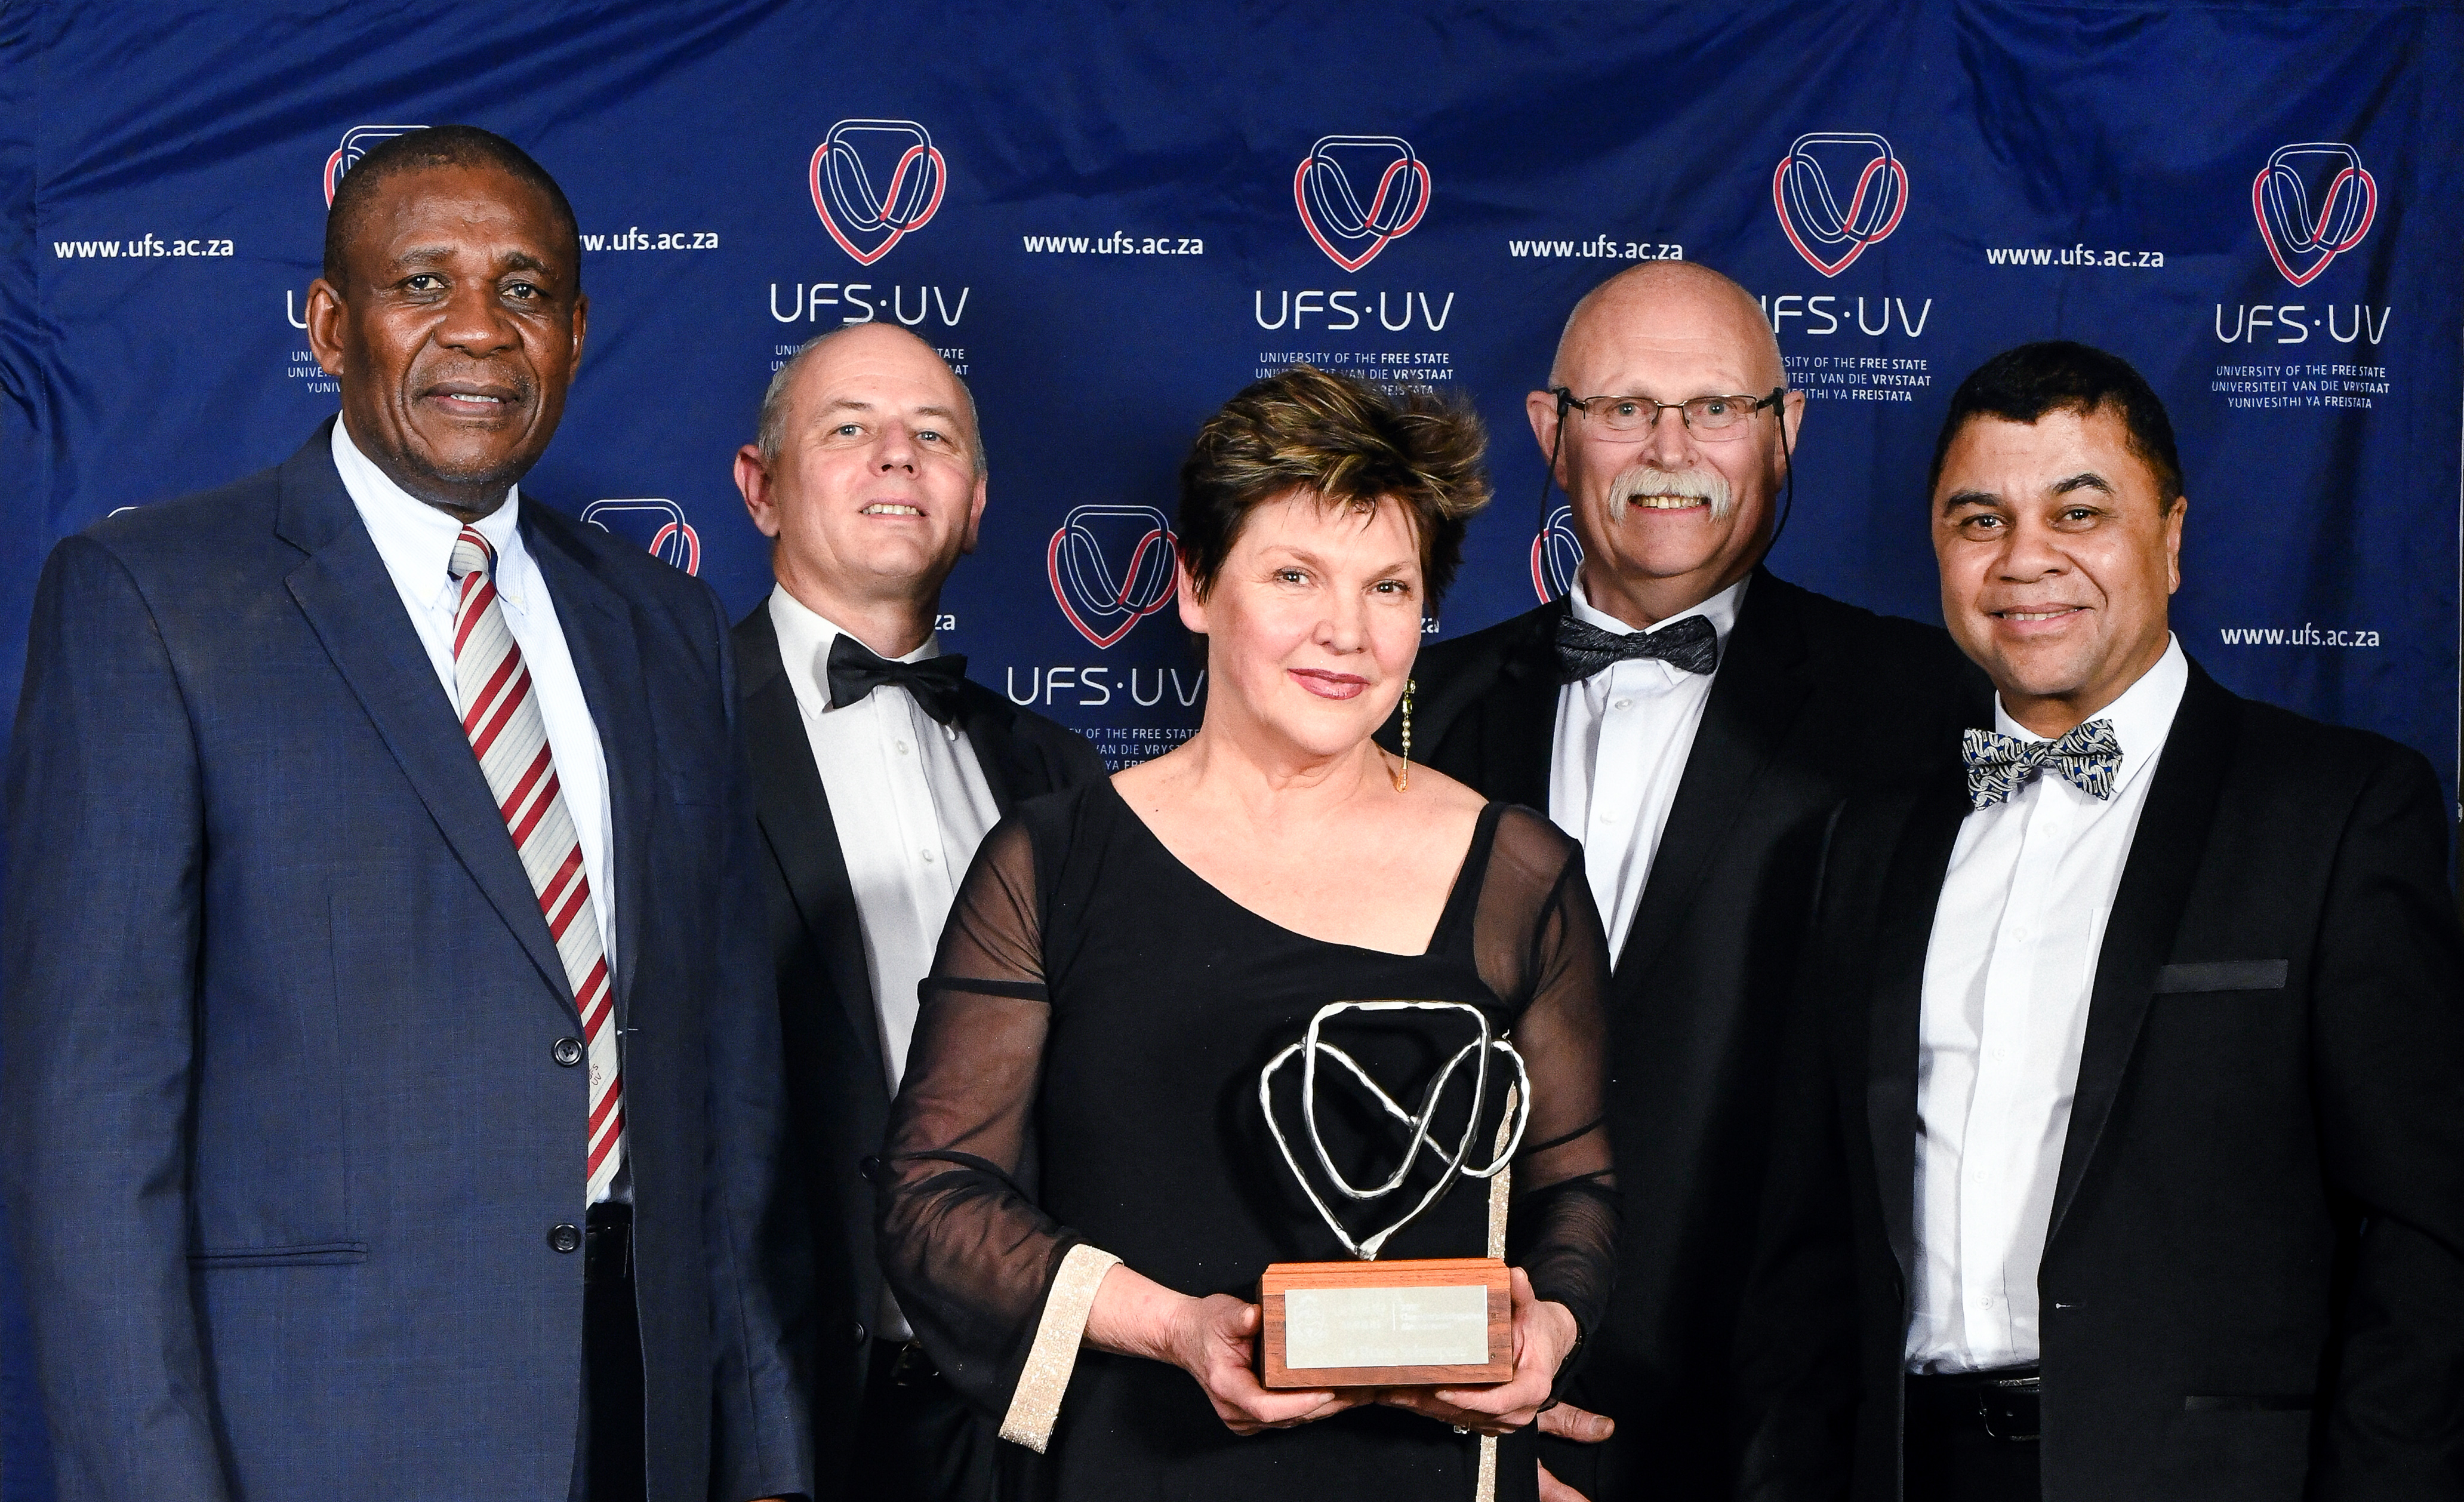 From the left; Dr Khotso Mokhele, UFS Chancellor; Dr Pieter du Toit; Dr Riana Scheepers; Willem Louw,Chairperson of Council and Prof Francis Petersen